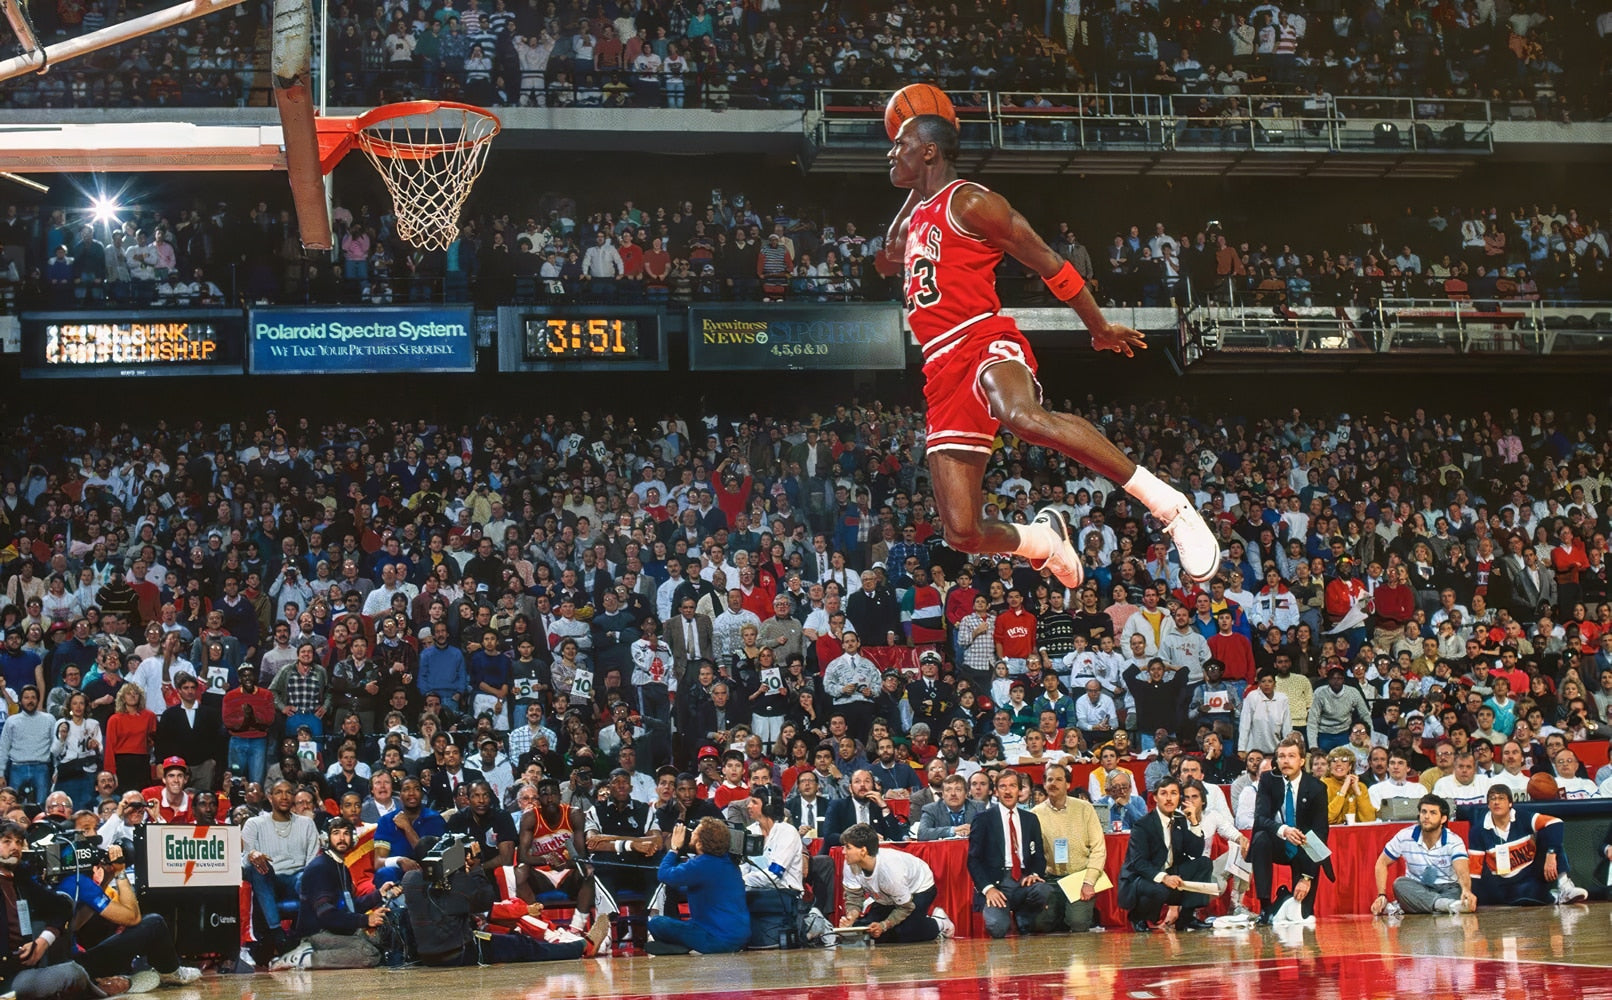 Jordan Classic Dunk Action Poster Home Decoration Sports Star Poster Wall Pictures for Living Room Canvas Painting Waterproof